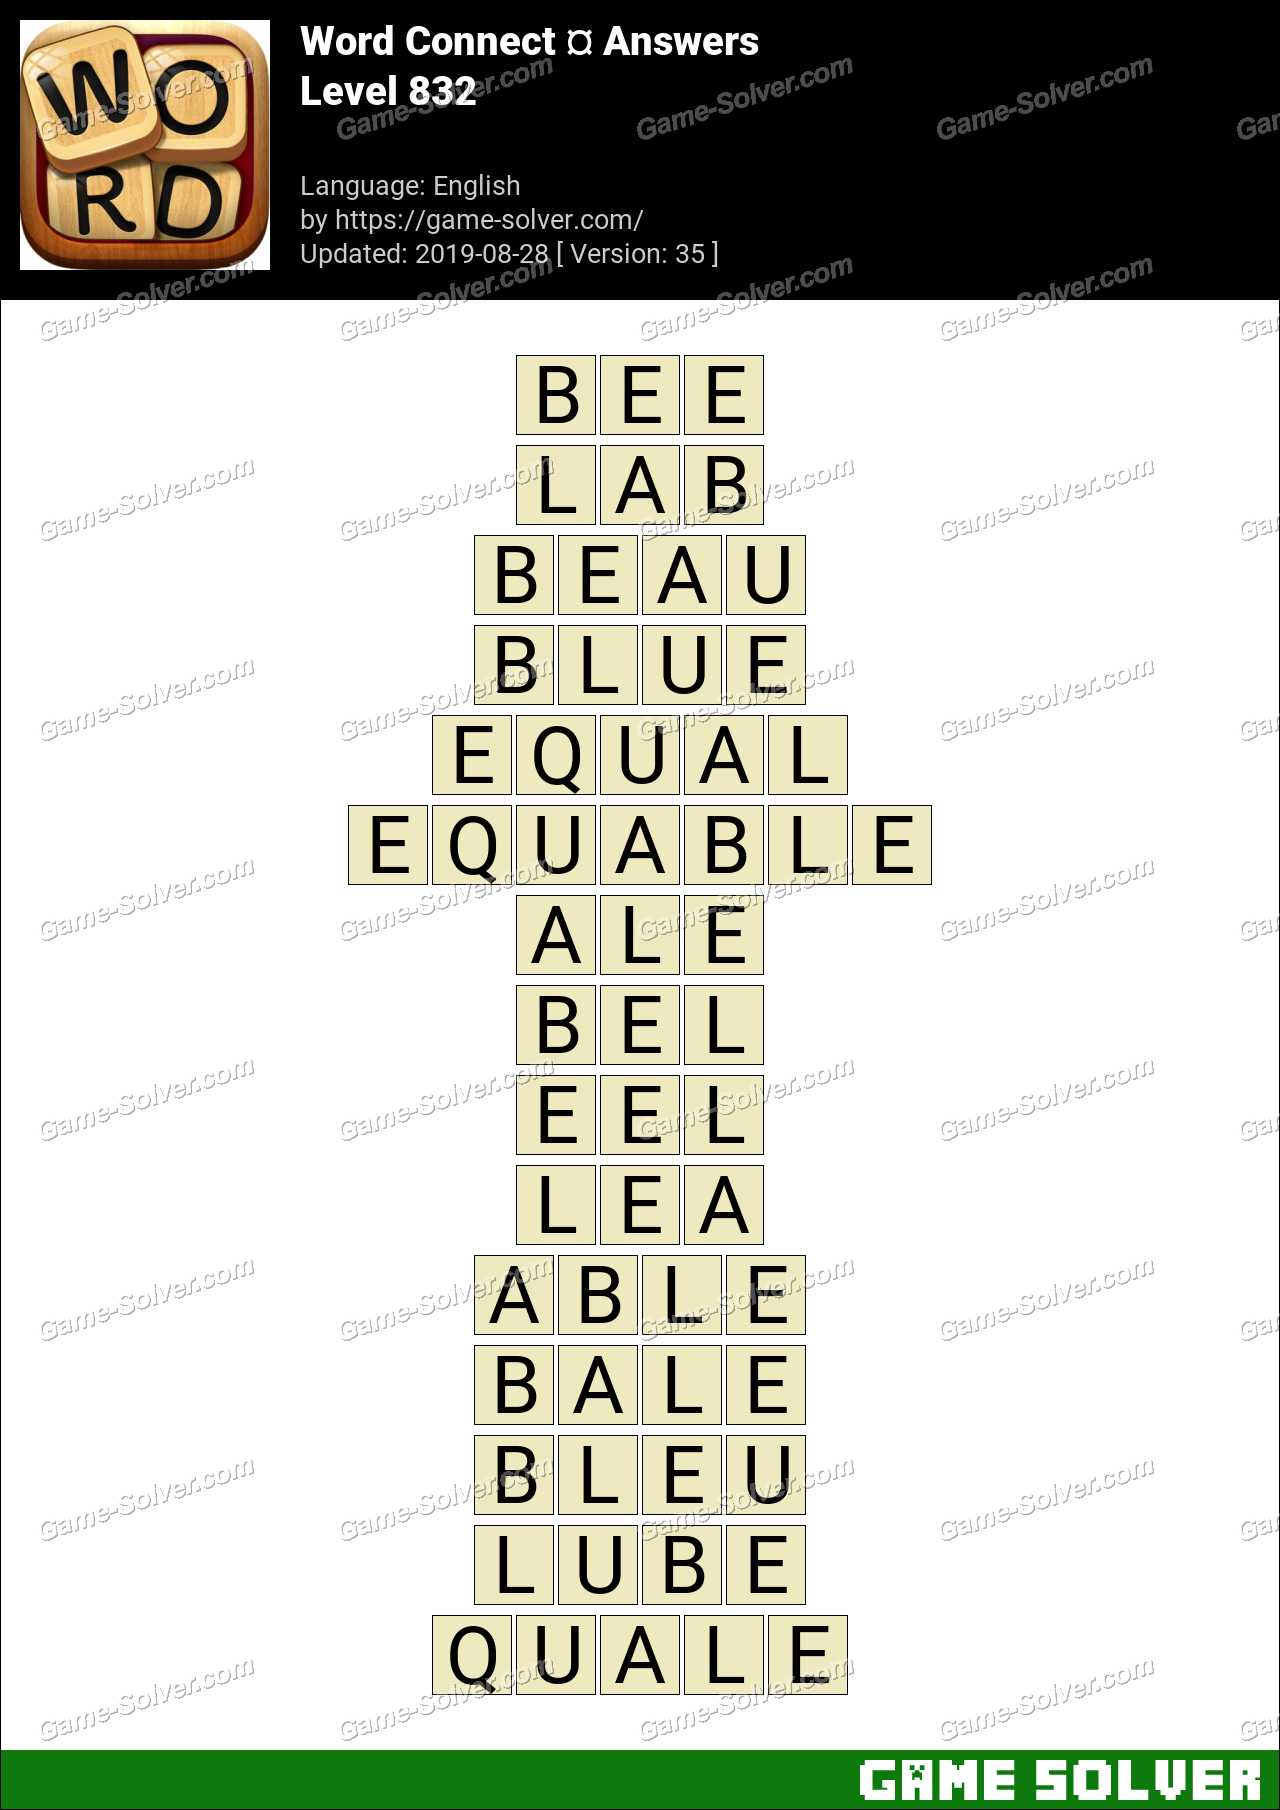 Word Connect Level 832 Answers